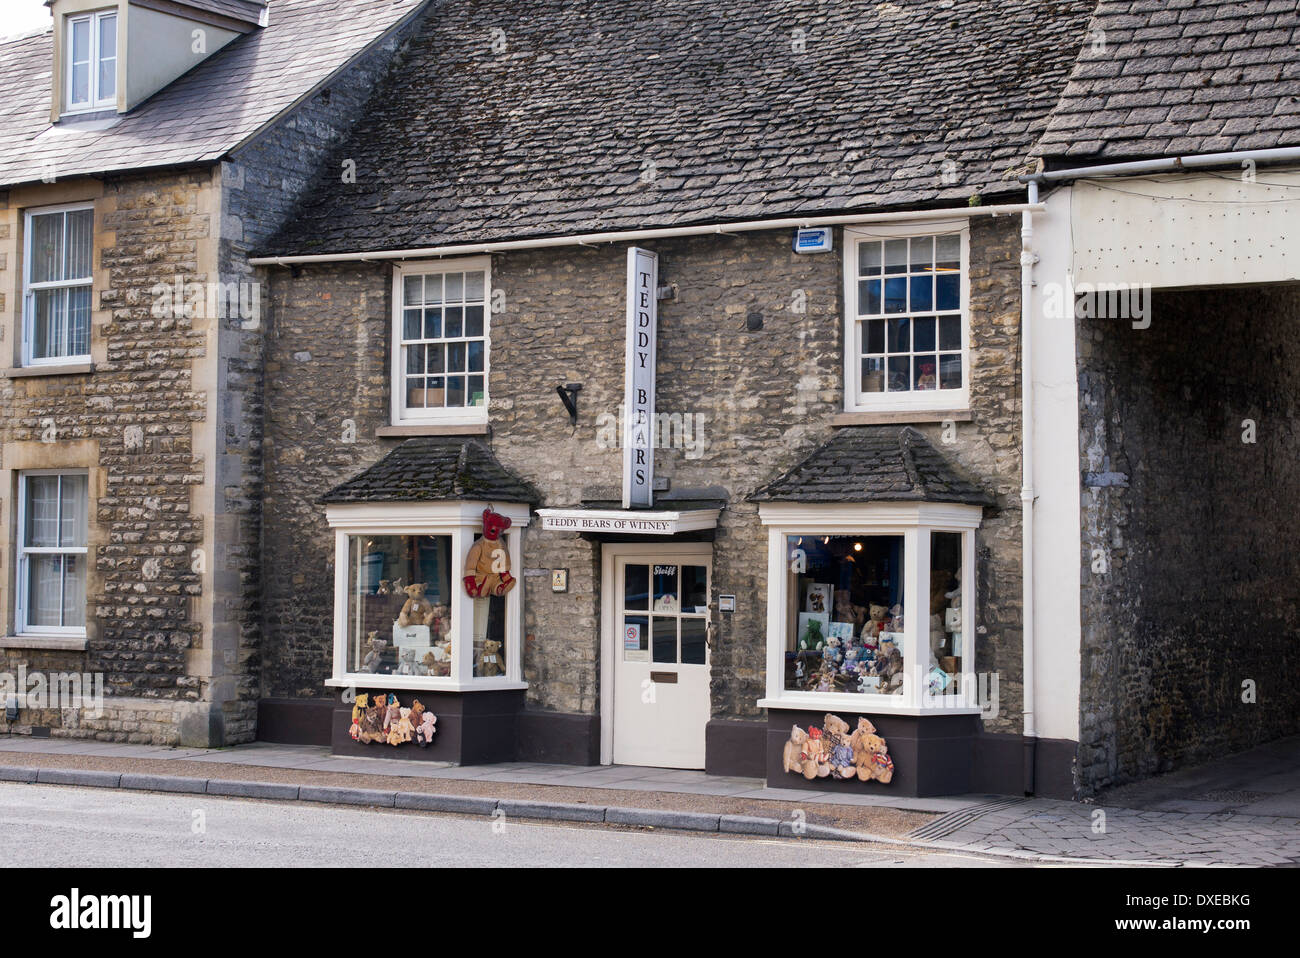 Teddy bear shop. Witney, Oxfordshire, England - Stock Image